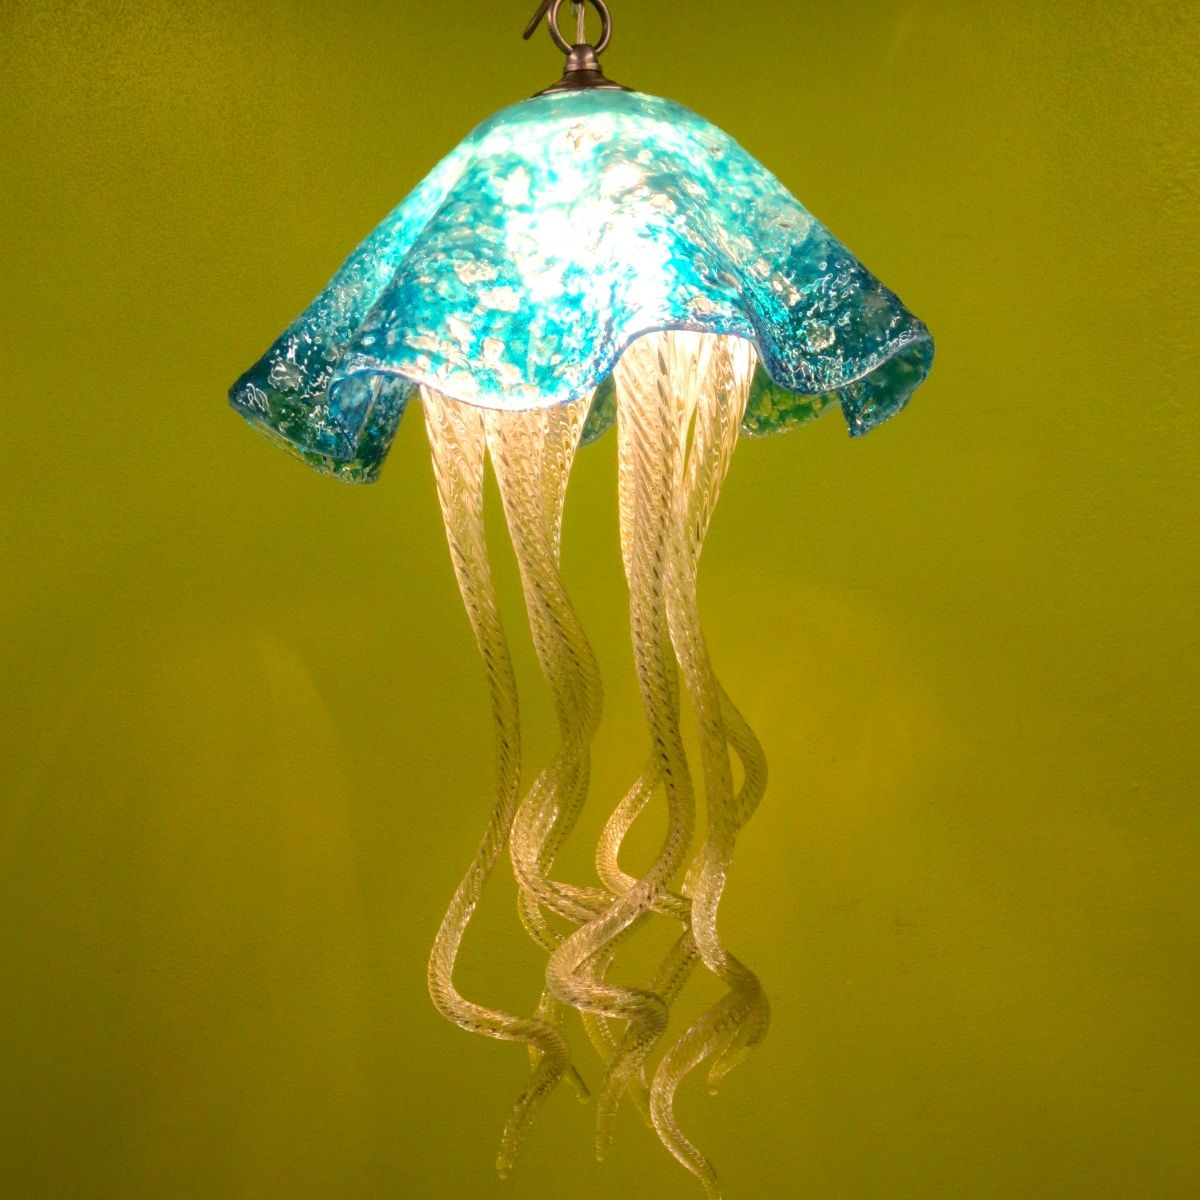 Buy a Hand Made Jellyfish Pendant Light - Turquoise Jellyfish - Blown Glass Lighting - Art Glass ...